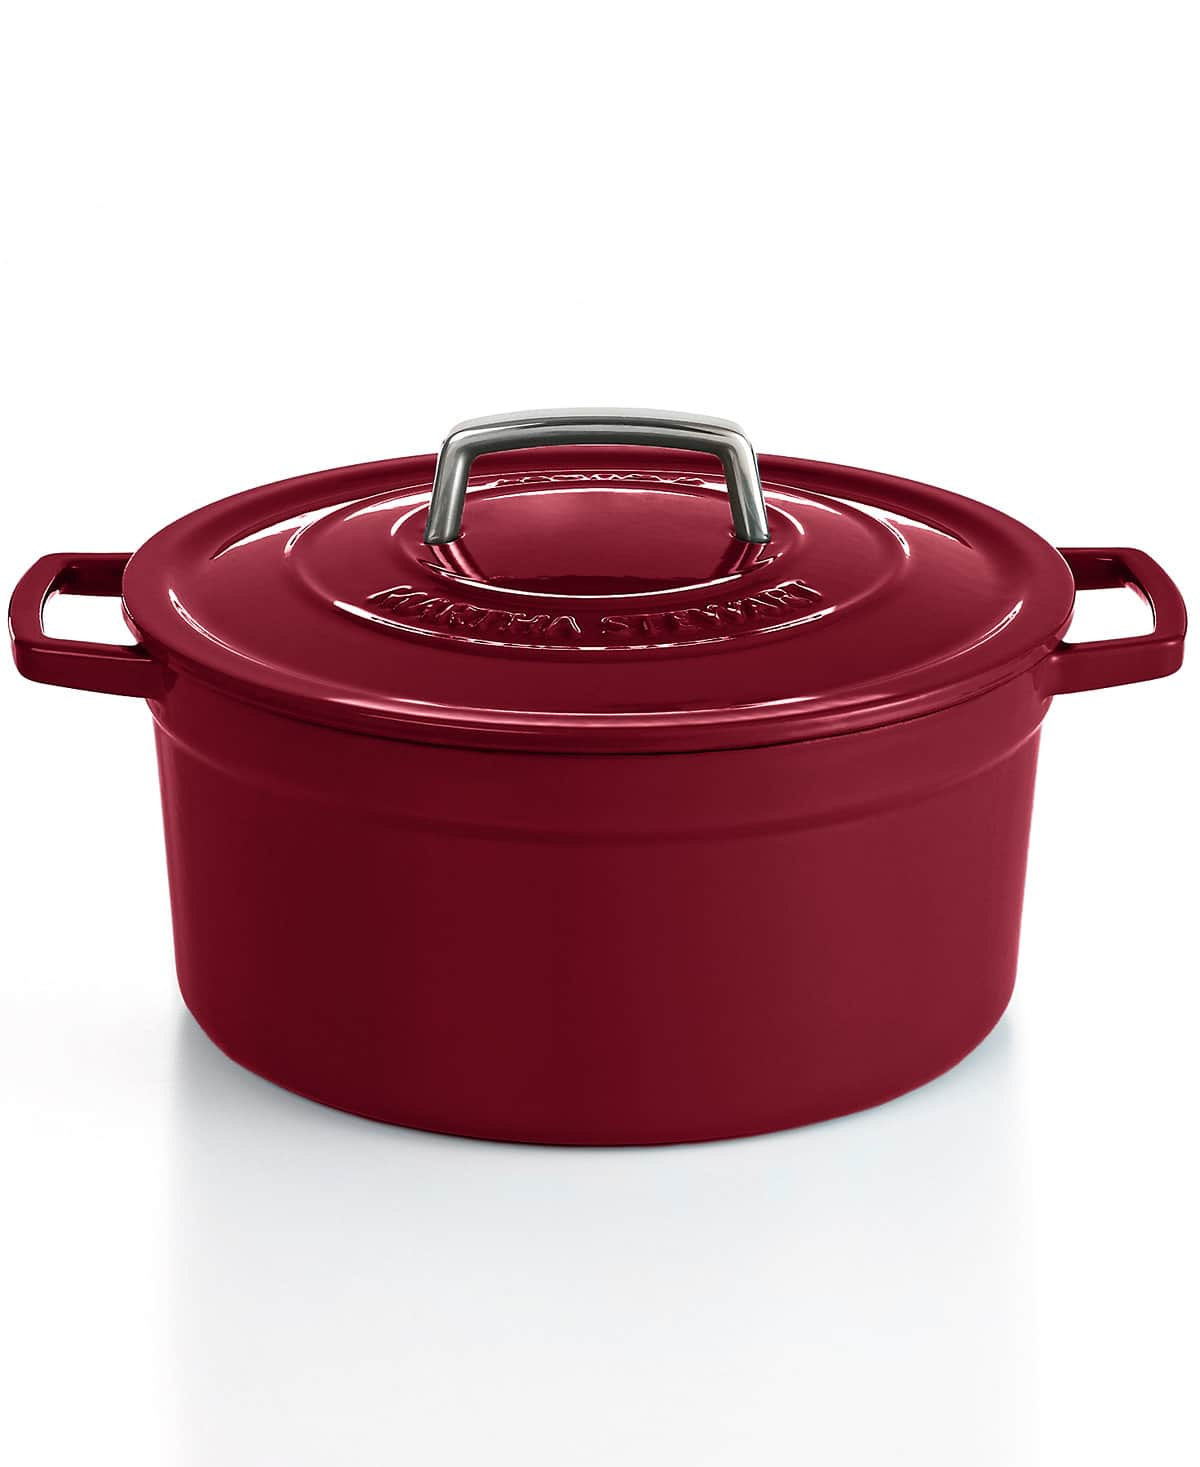 Martha Stewart Collection Collector's Enameled Cast Iron 6 Qt. Round Dutch Oven $39.99 AR